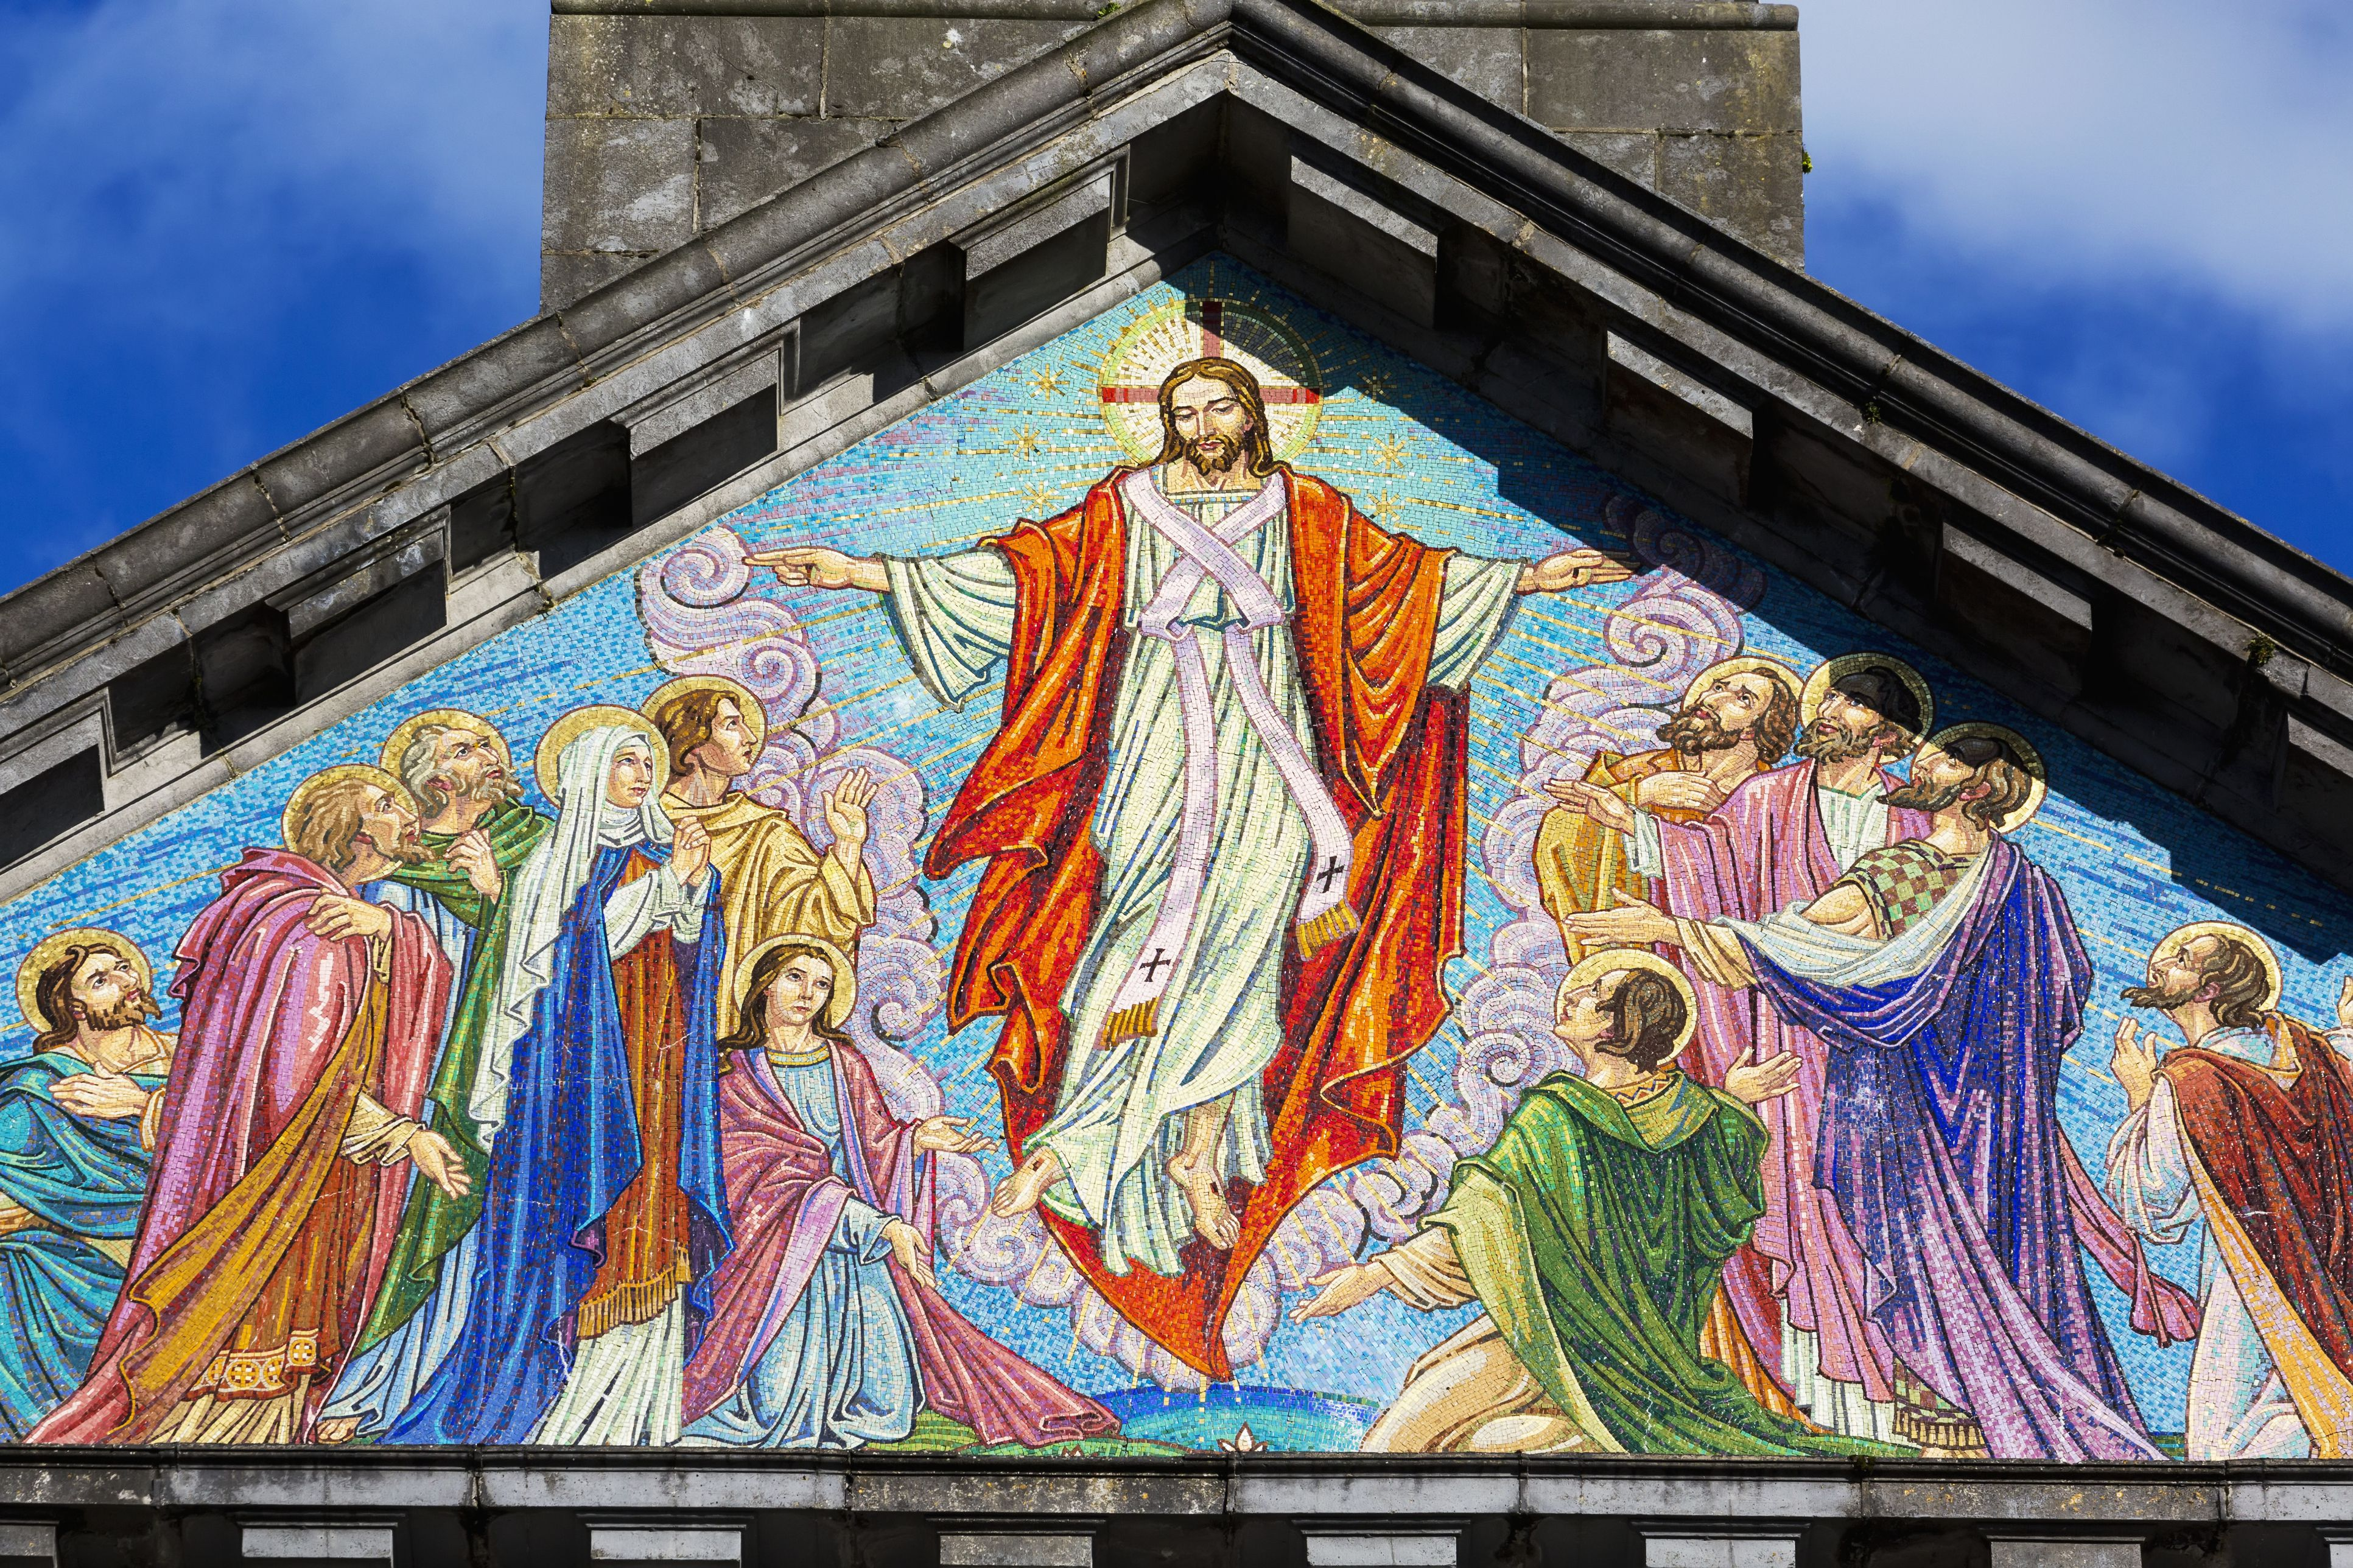 Close up of colourful mosaic of the ascension of Christ on church face with stone peak and blue sky; Cashel, County Tipperary, Ireland